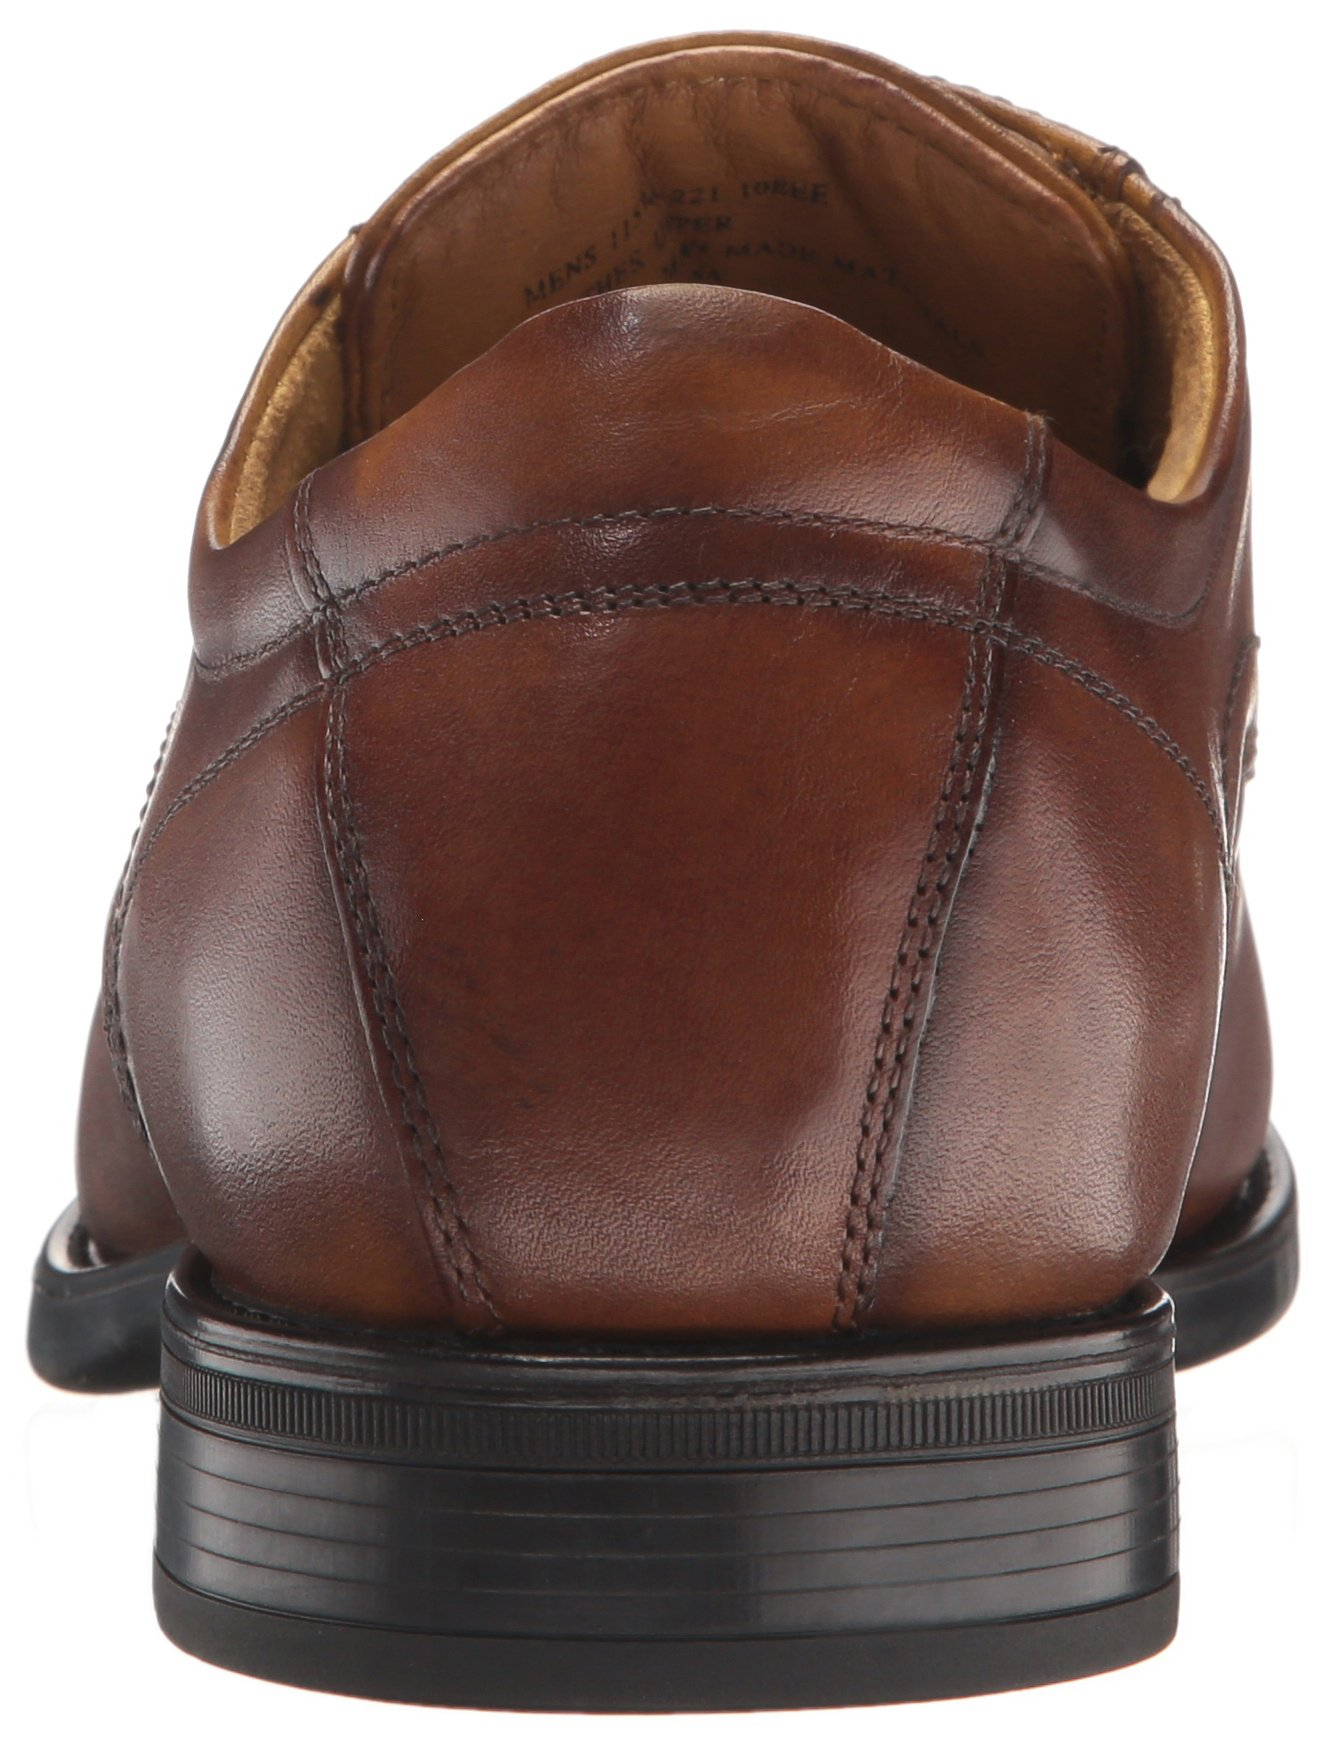 Florsheim Men's Medfield Plain Toe Oxford Dress Shoe, Cognac, 8 D US by Florsheim (Image #2)